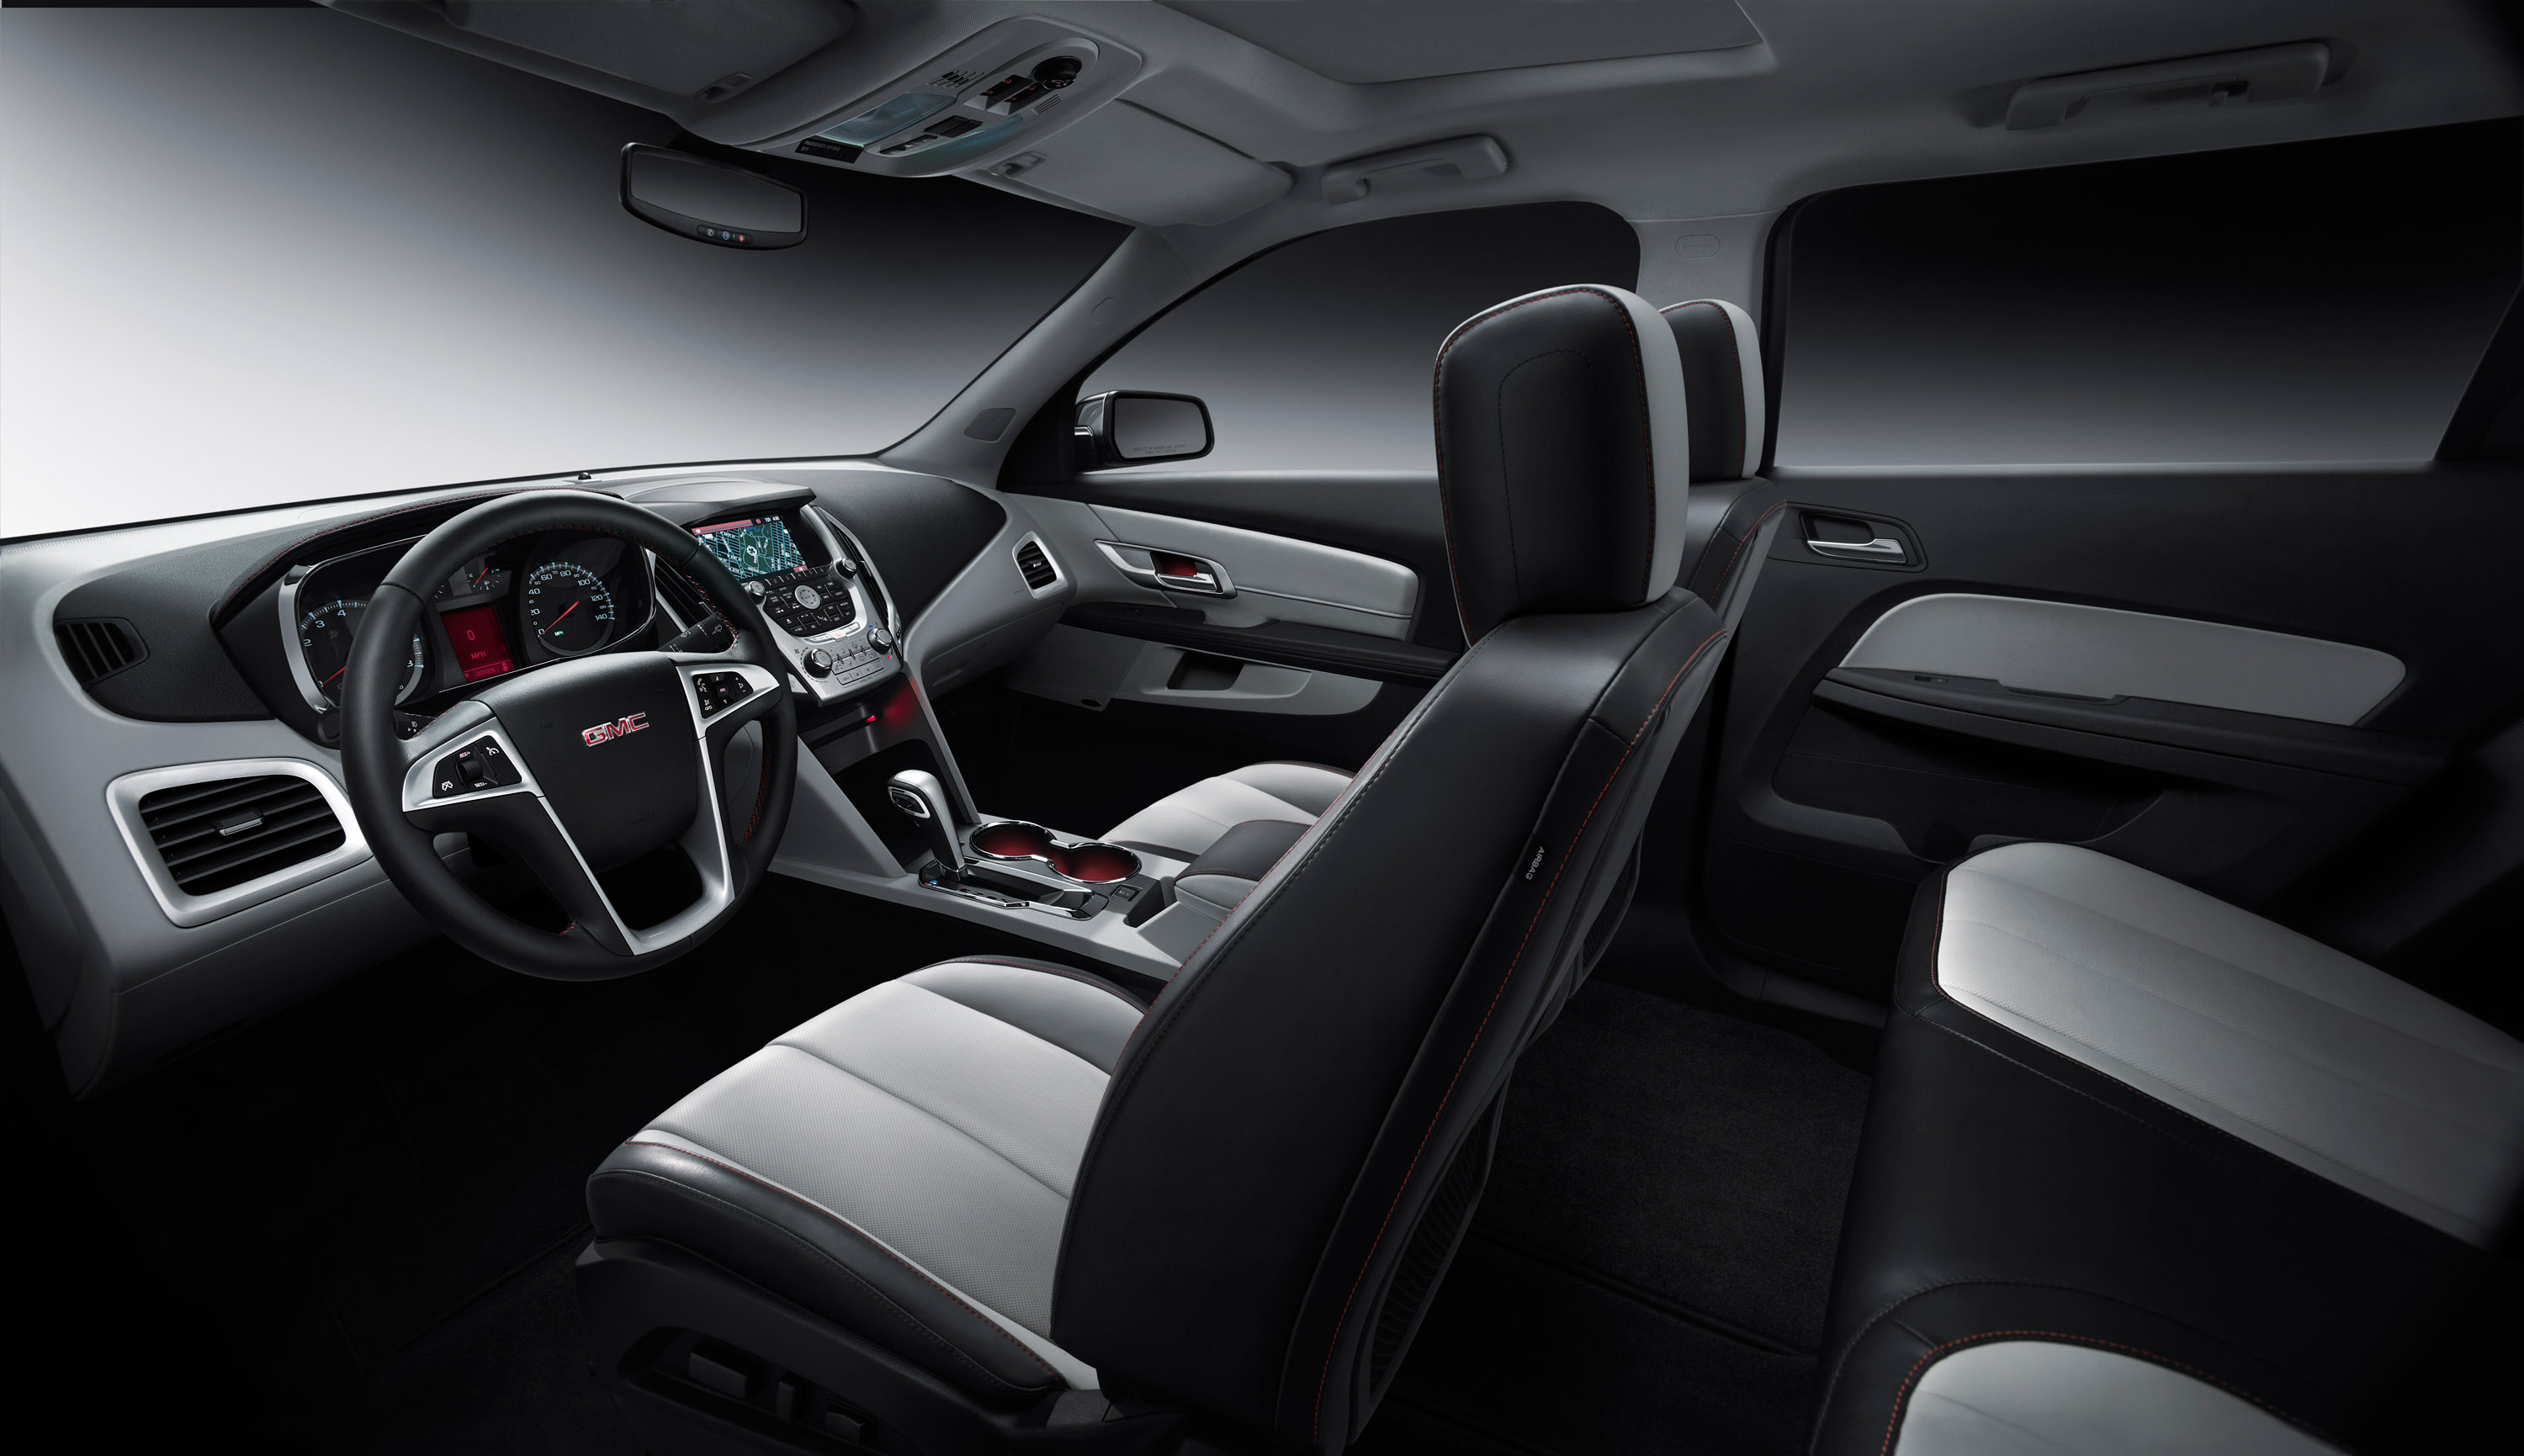 2010 Gmc Terrain Efficient And Capable